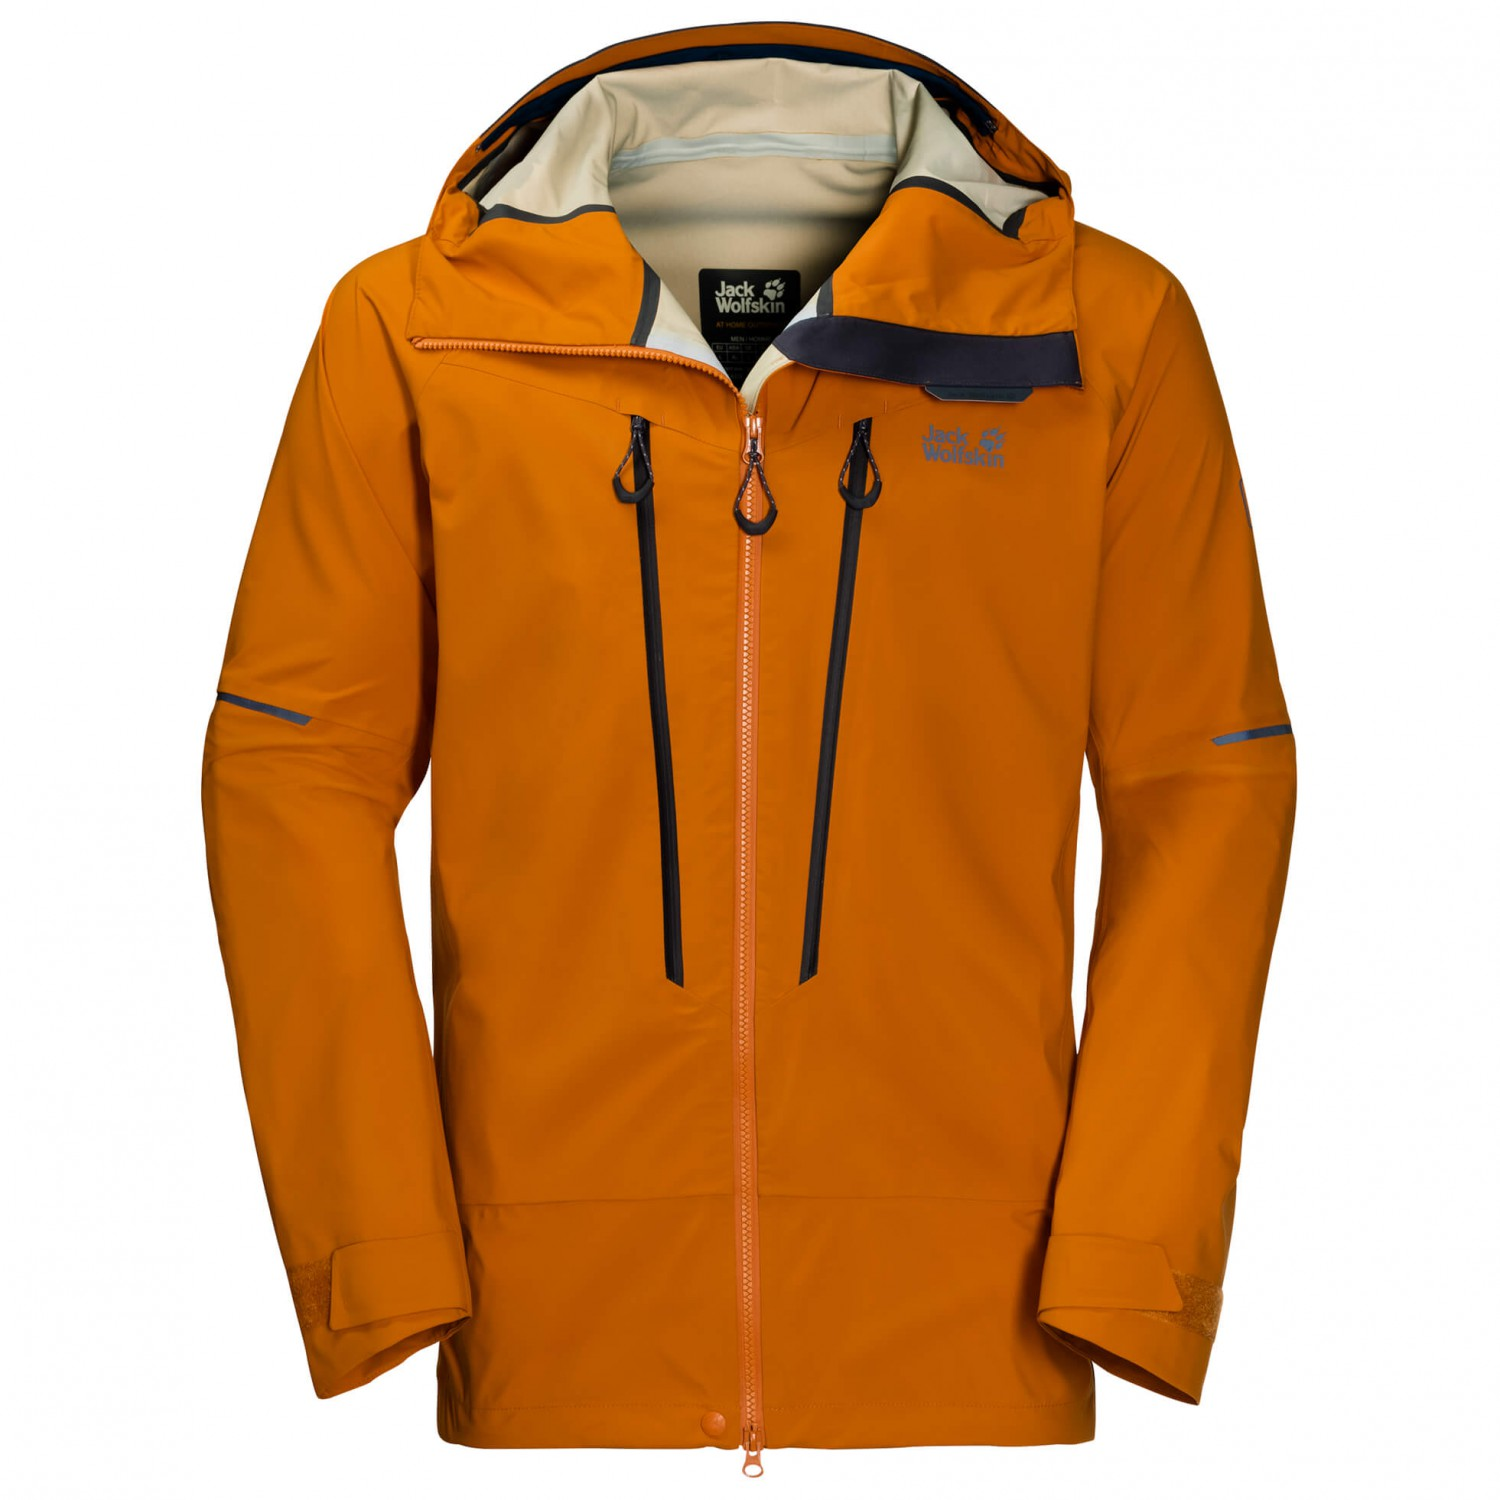 Jack Wolfskin Exolight Mountain Jacket Hardshelljacke